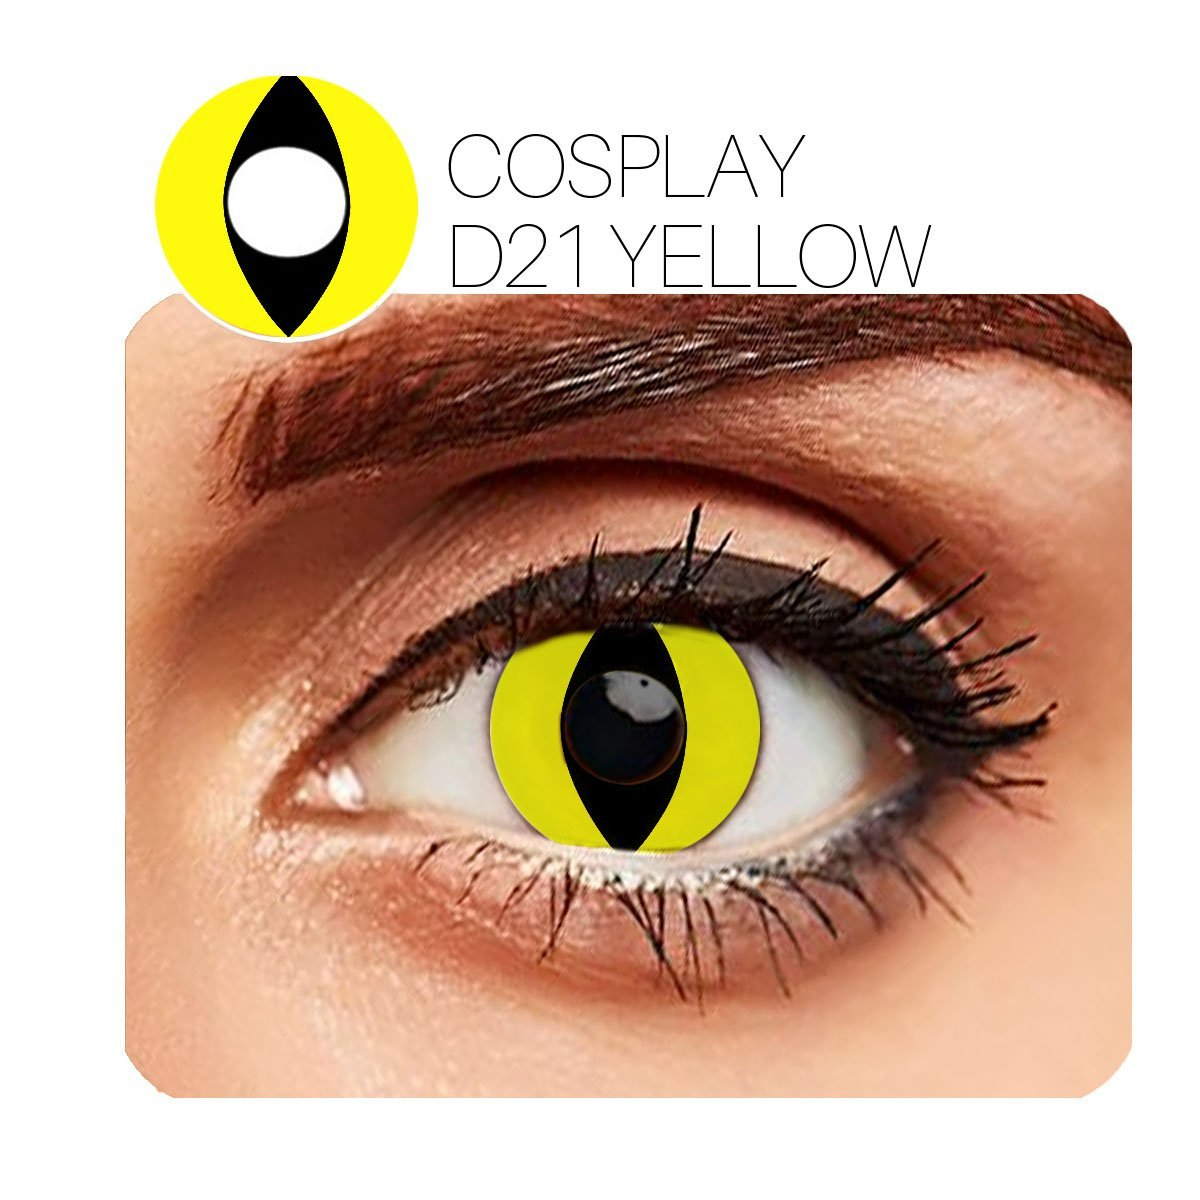 Spider Cosplay Yellow (12 Month) Contact Lenses